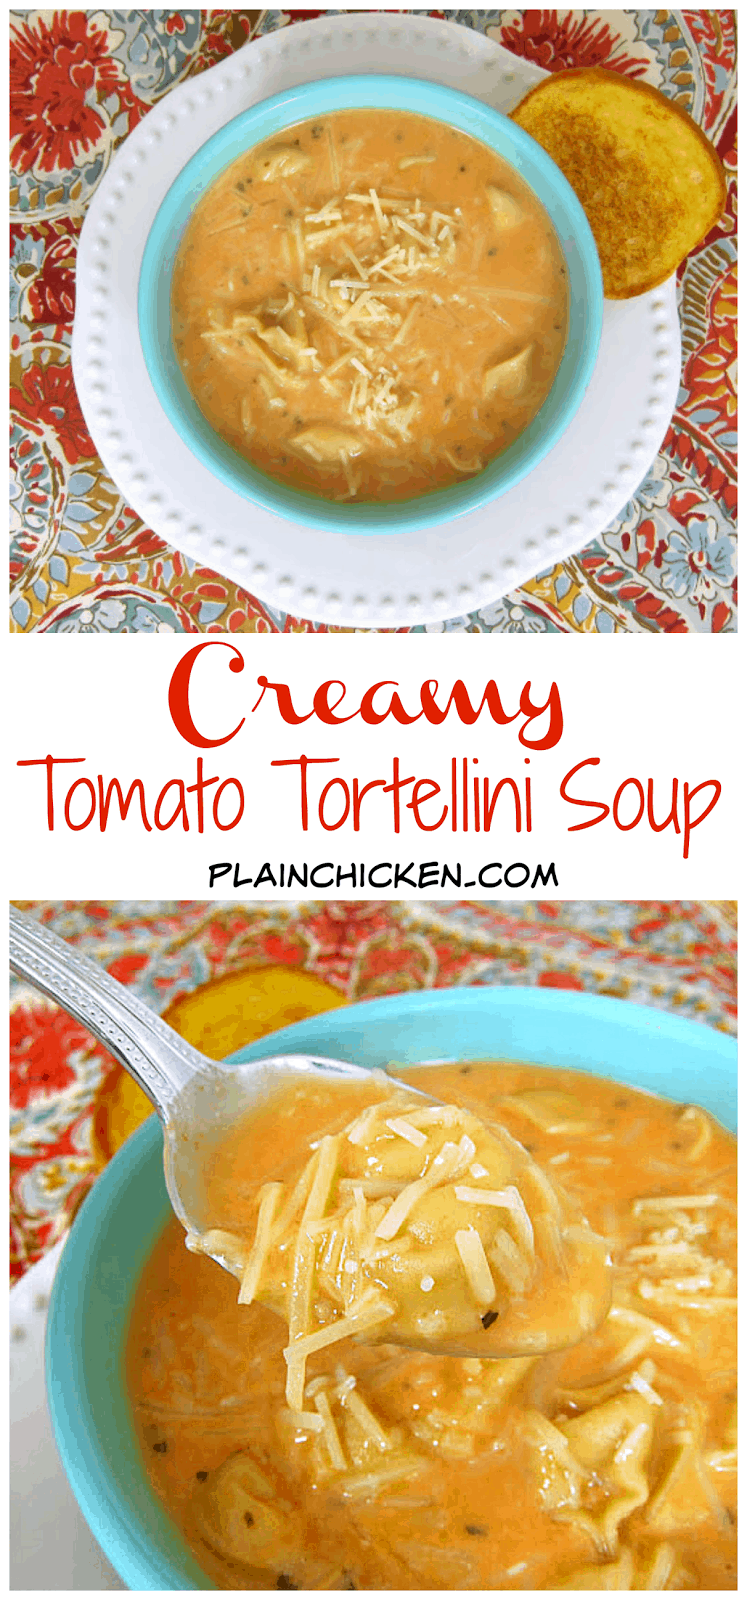 Creamy Tomato Tortellini Soup - Ready in 10 minutes!!! Doctored up canned tomato soup with refrigerated tortellini, chicken broth, half-and-half, onion powder, garlic powder, basil and parmesan cheese. This stuff is crazy good! No one will ever know it starts with canned soup! I can't get enough of it!